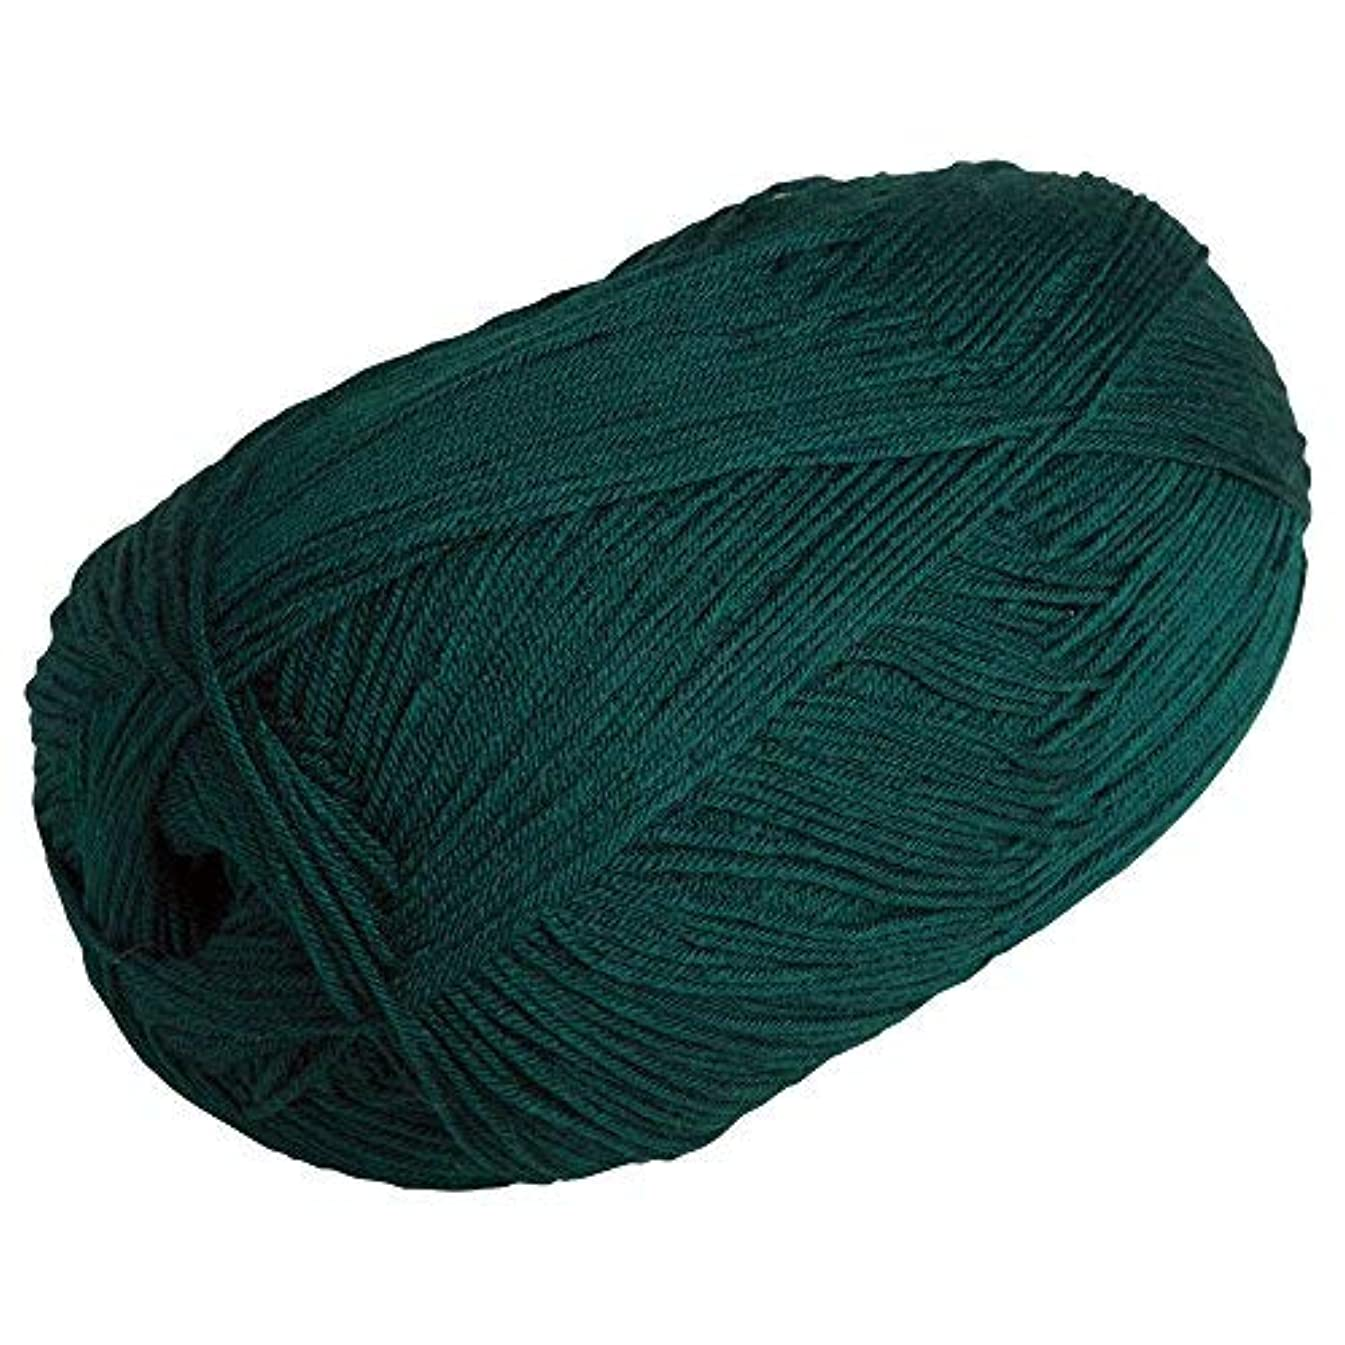 Knit Picks Brava 500 Yarn Medium Worsted Premium Acrylic 17.6 oz (Hunter)